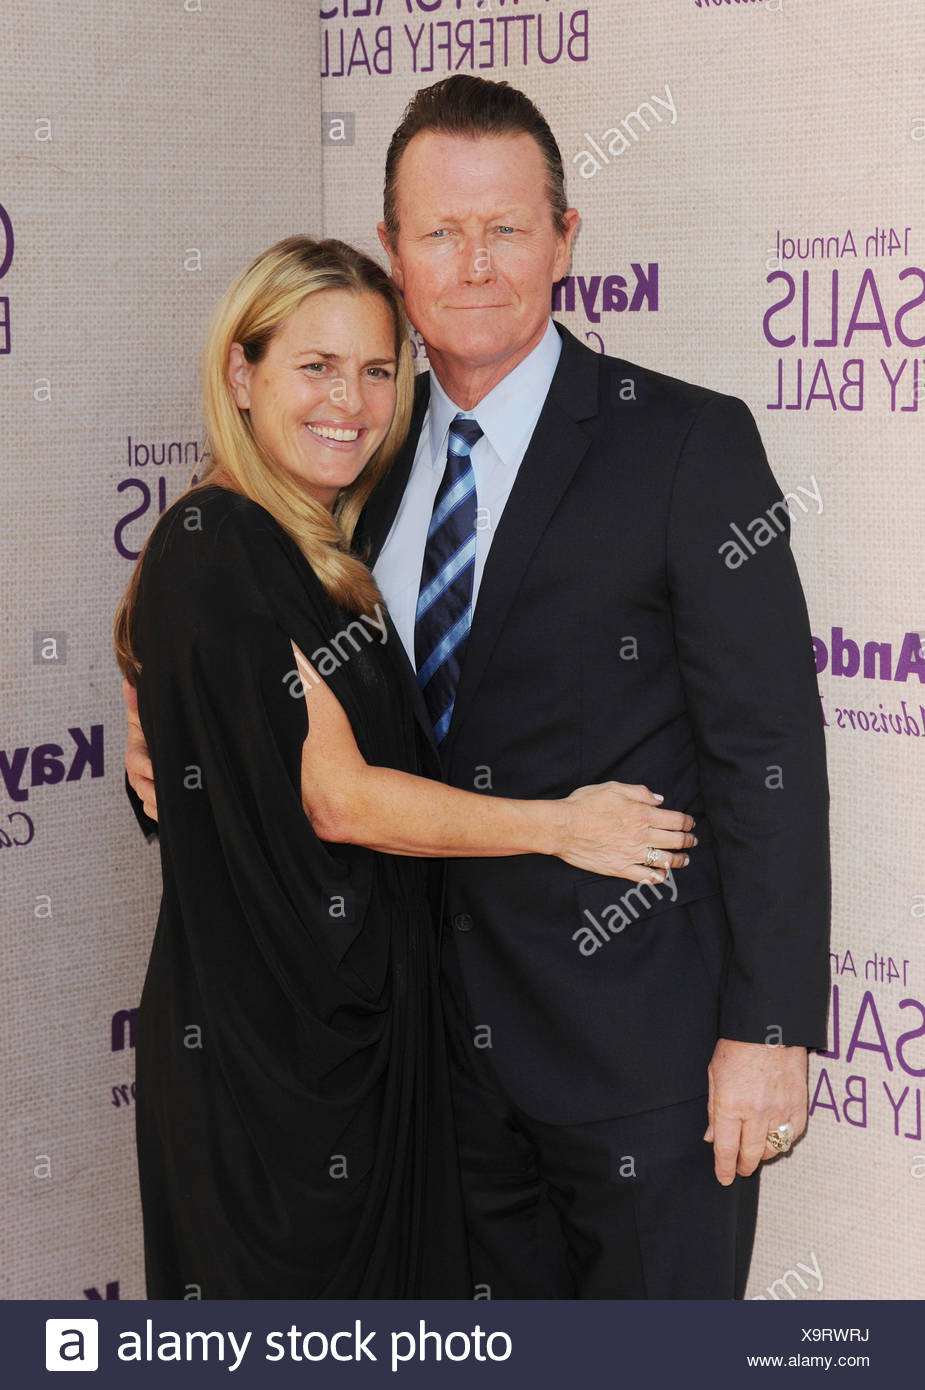 Actors Robert Patrick (L) and Barbara Patrick attend the 14th annual Chrysalis Butterfly Ball sponsored by Audi, Kayne Anderson, Lauren B. Beauty and Z Gallerie on June 6, 2015 in Los Angeles, California., Additional-Rights-Clearances-NA - Stock Image